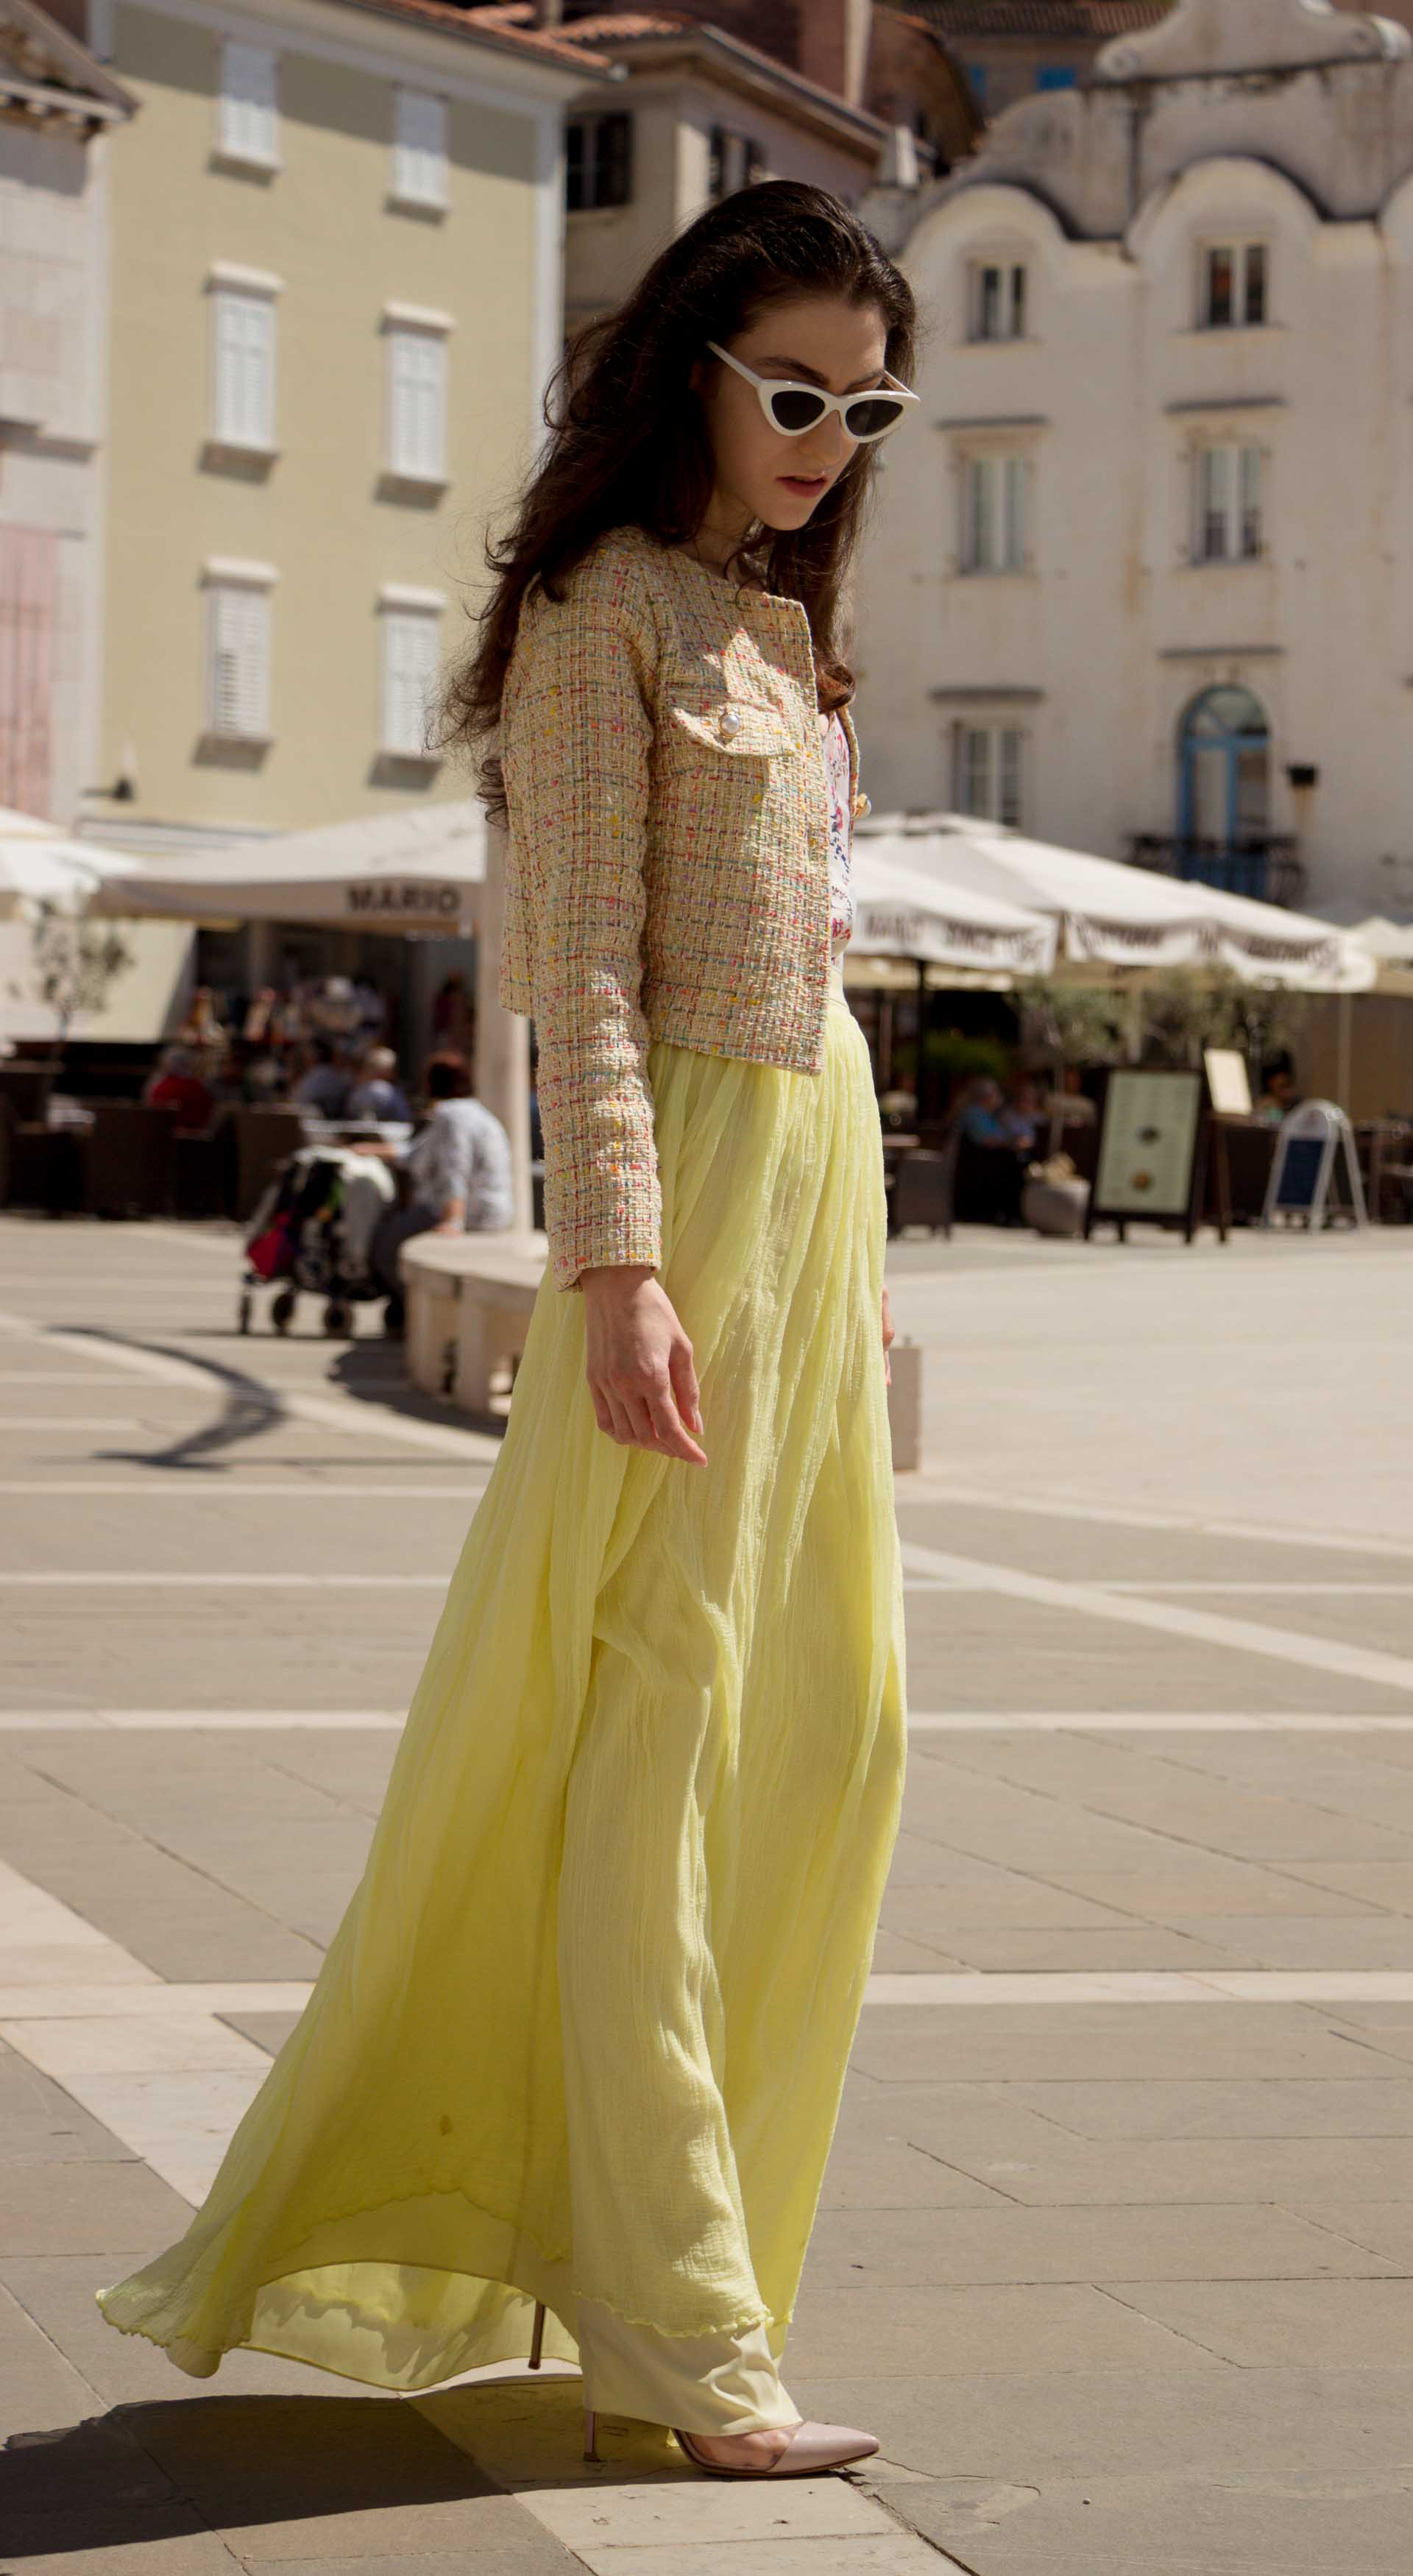 Veronika Lipar Fashion Blogger of Brunette from Wall Street wearing long yellow tulle skirt from Needle & Thread, short yellow tweed jacket from Storets, floral sik top, blush Gianvito Rossi plexi pumps, white shoulder bag, Lespecs white cat eye sunglasses